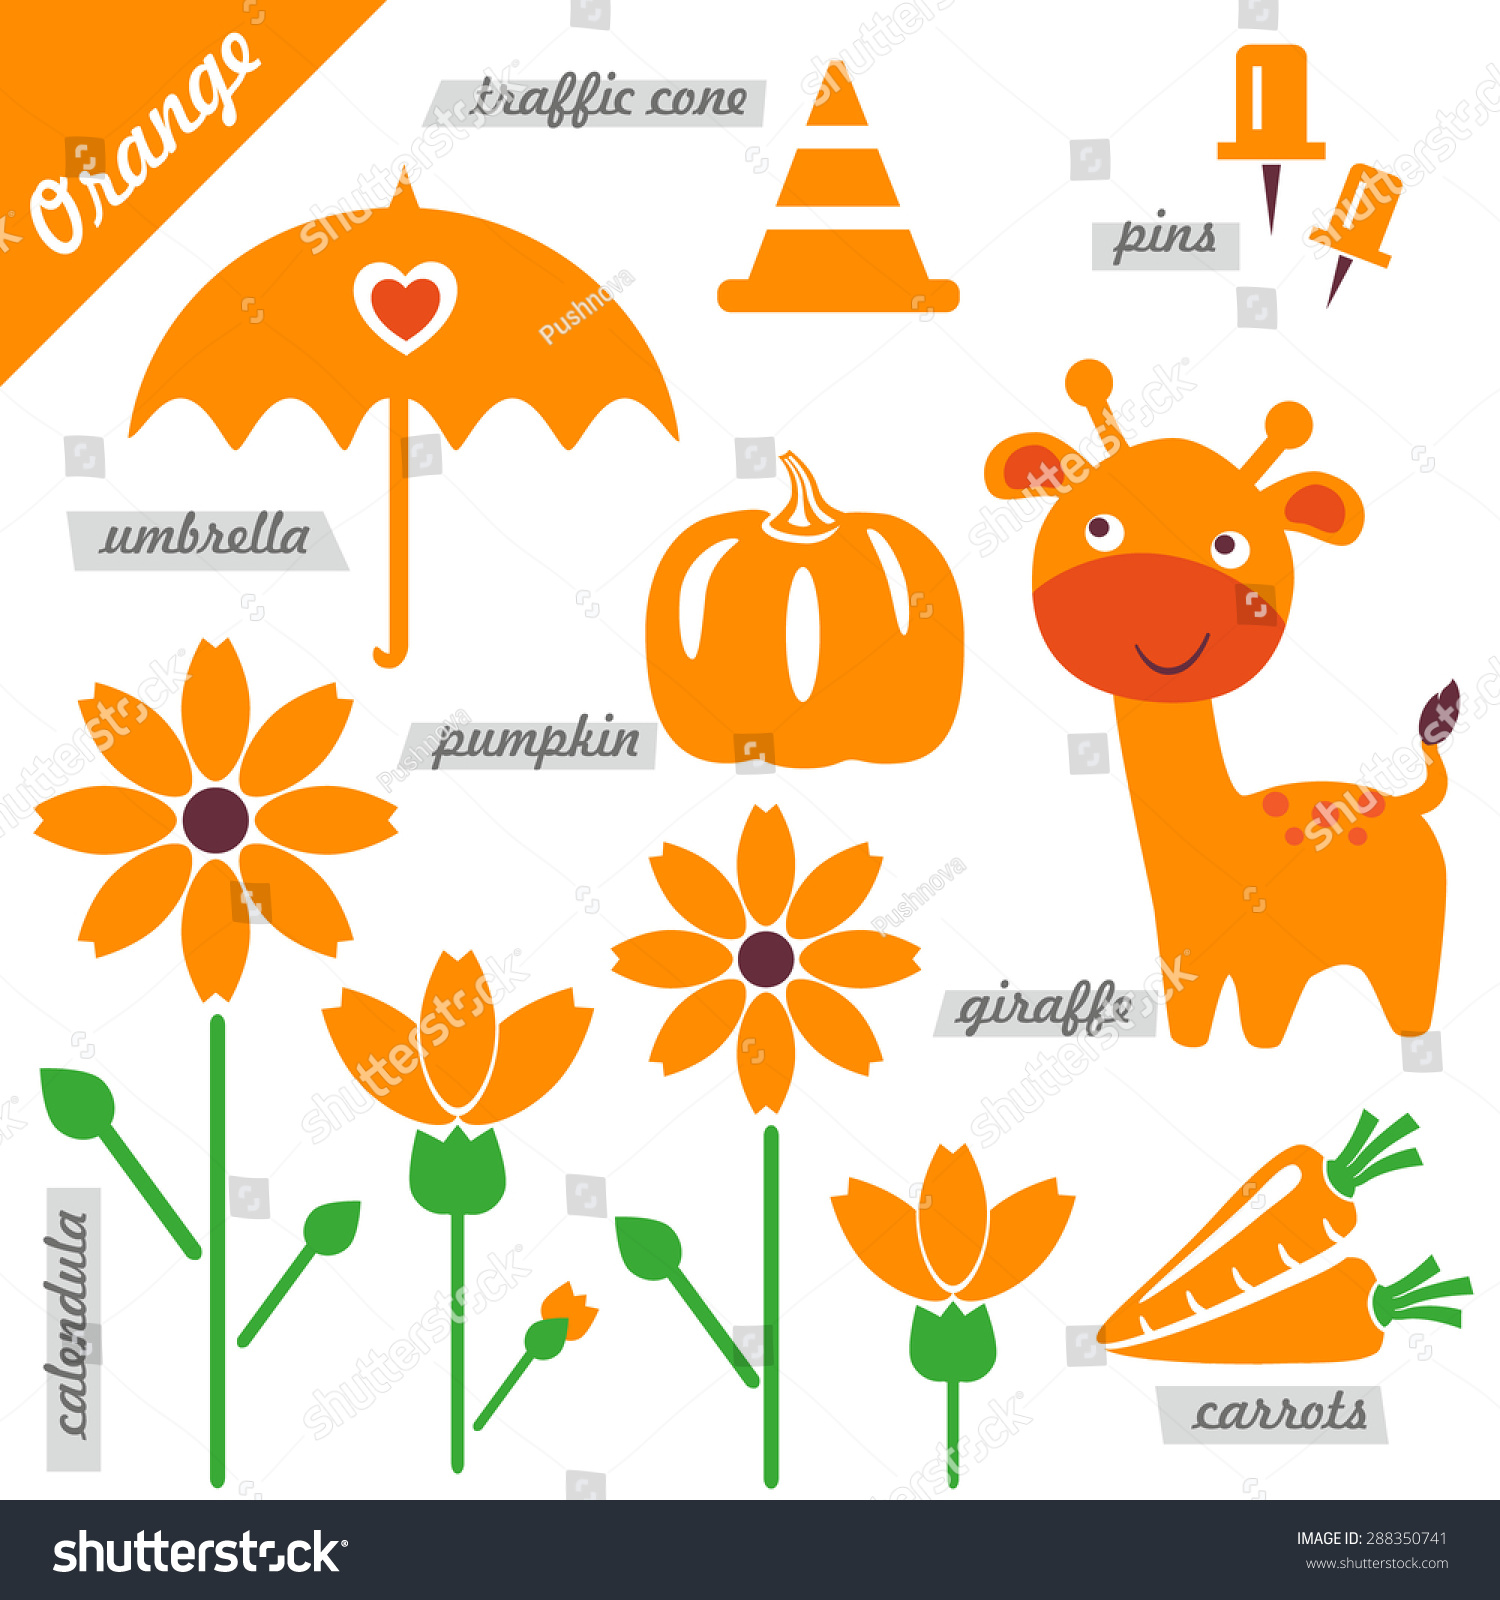 Set images examples orange color kids stock vector for Orange colour things